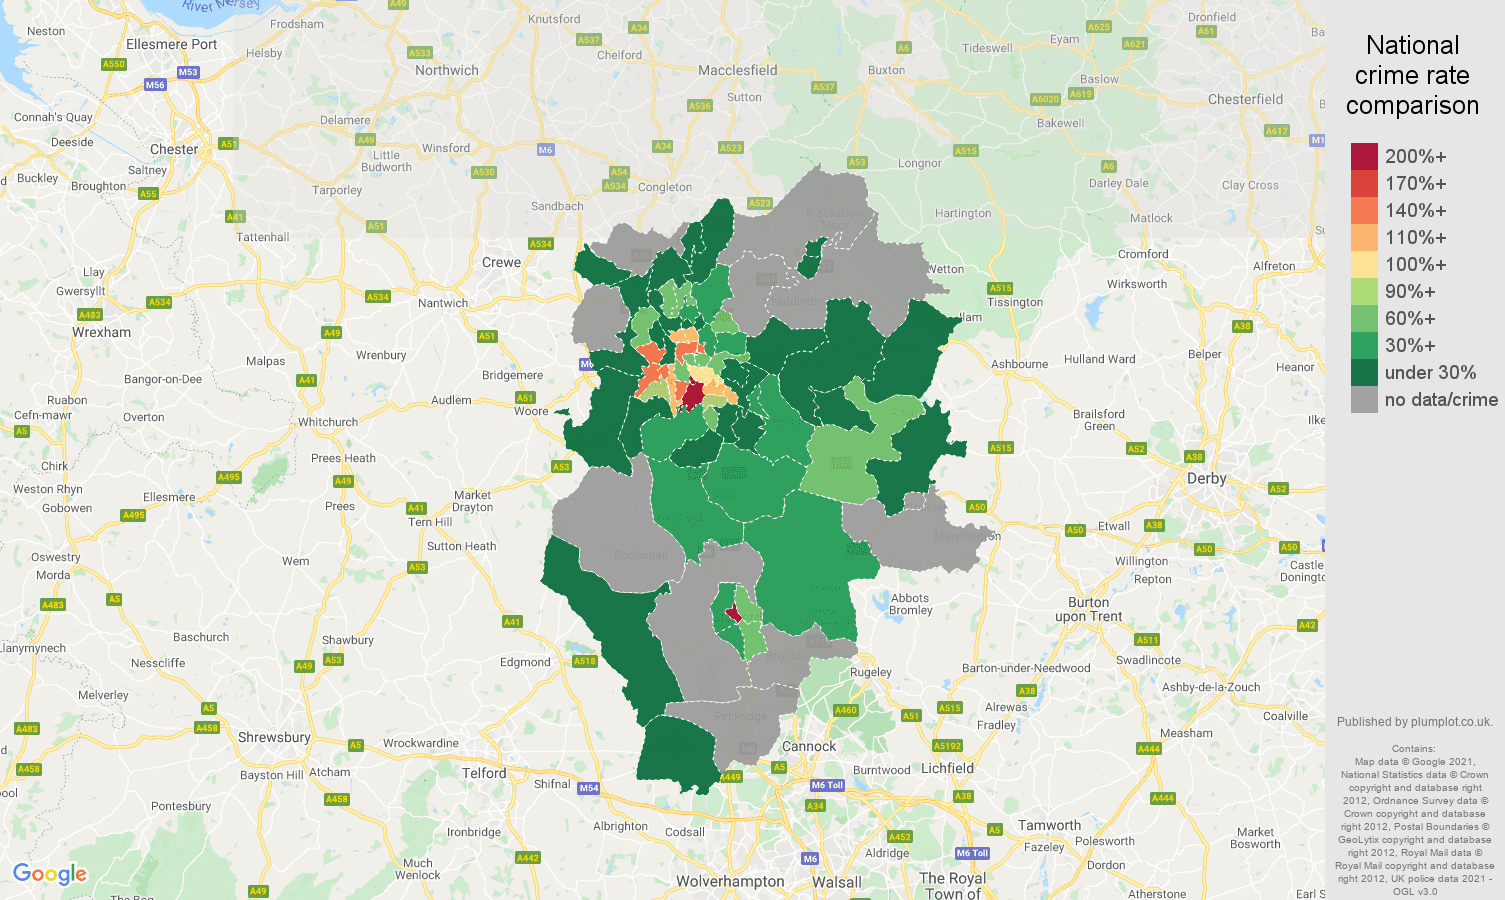 Stoke on Trent bicycle theft crime rate comparison map